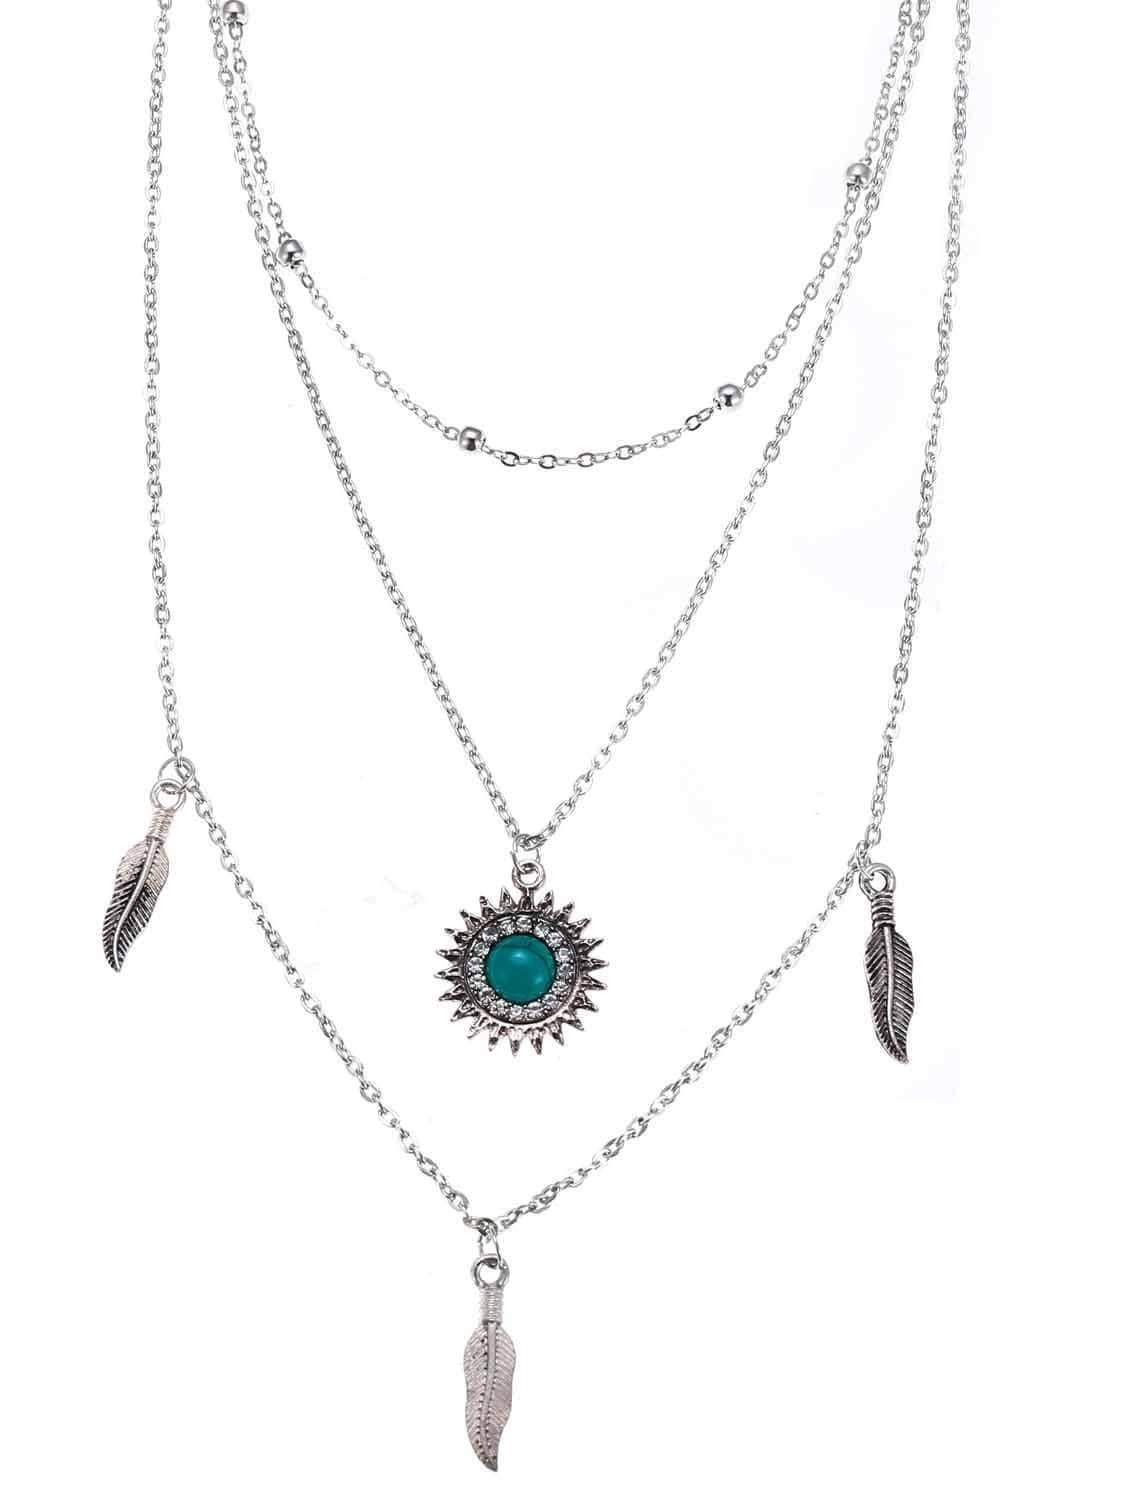 Vintage 3 Layer Sun Feather Necklace Chain